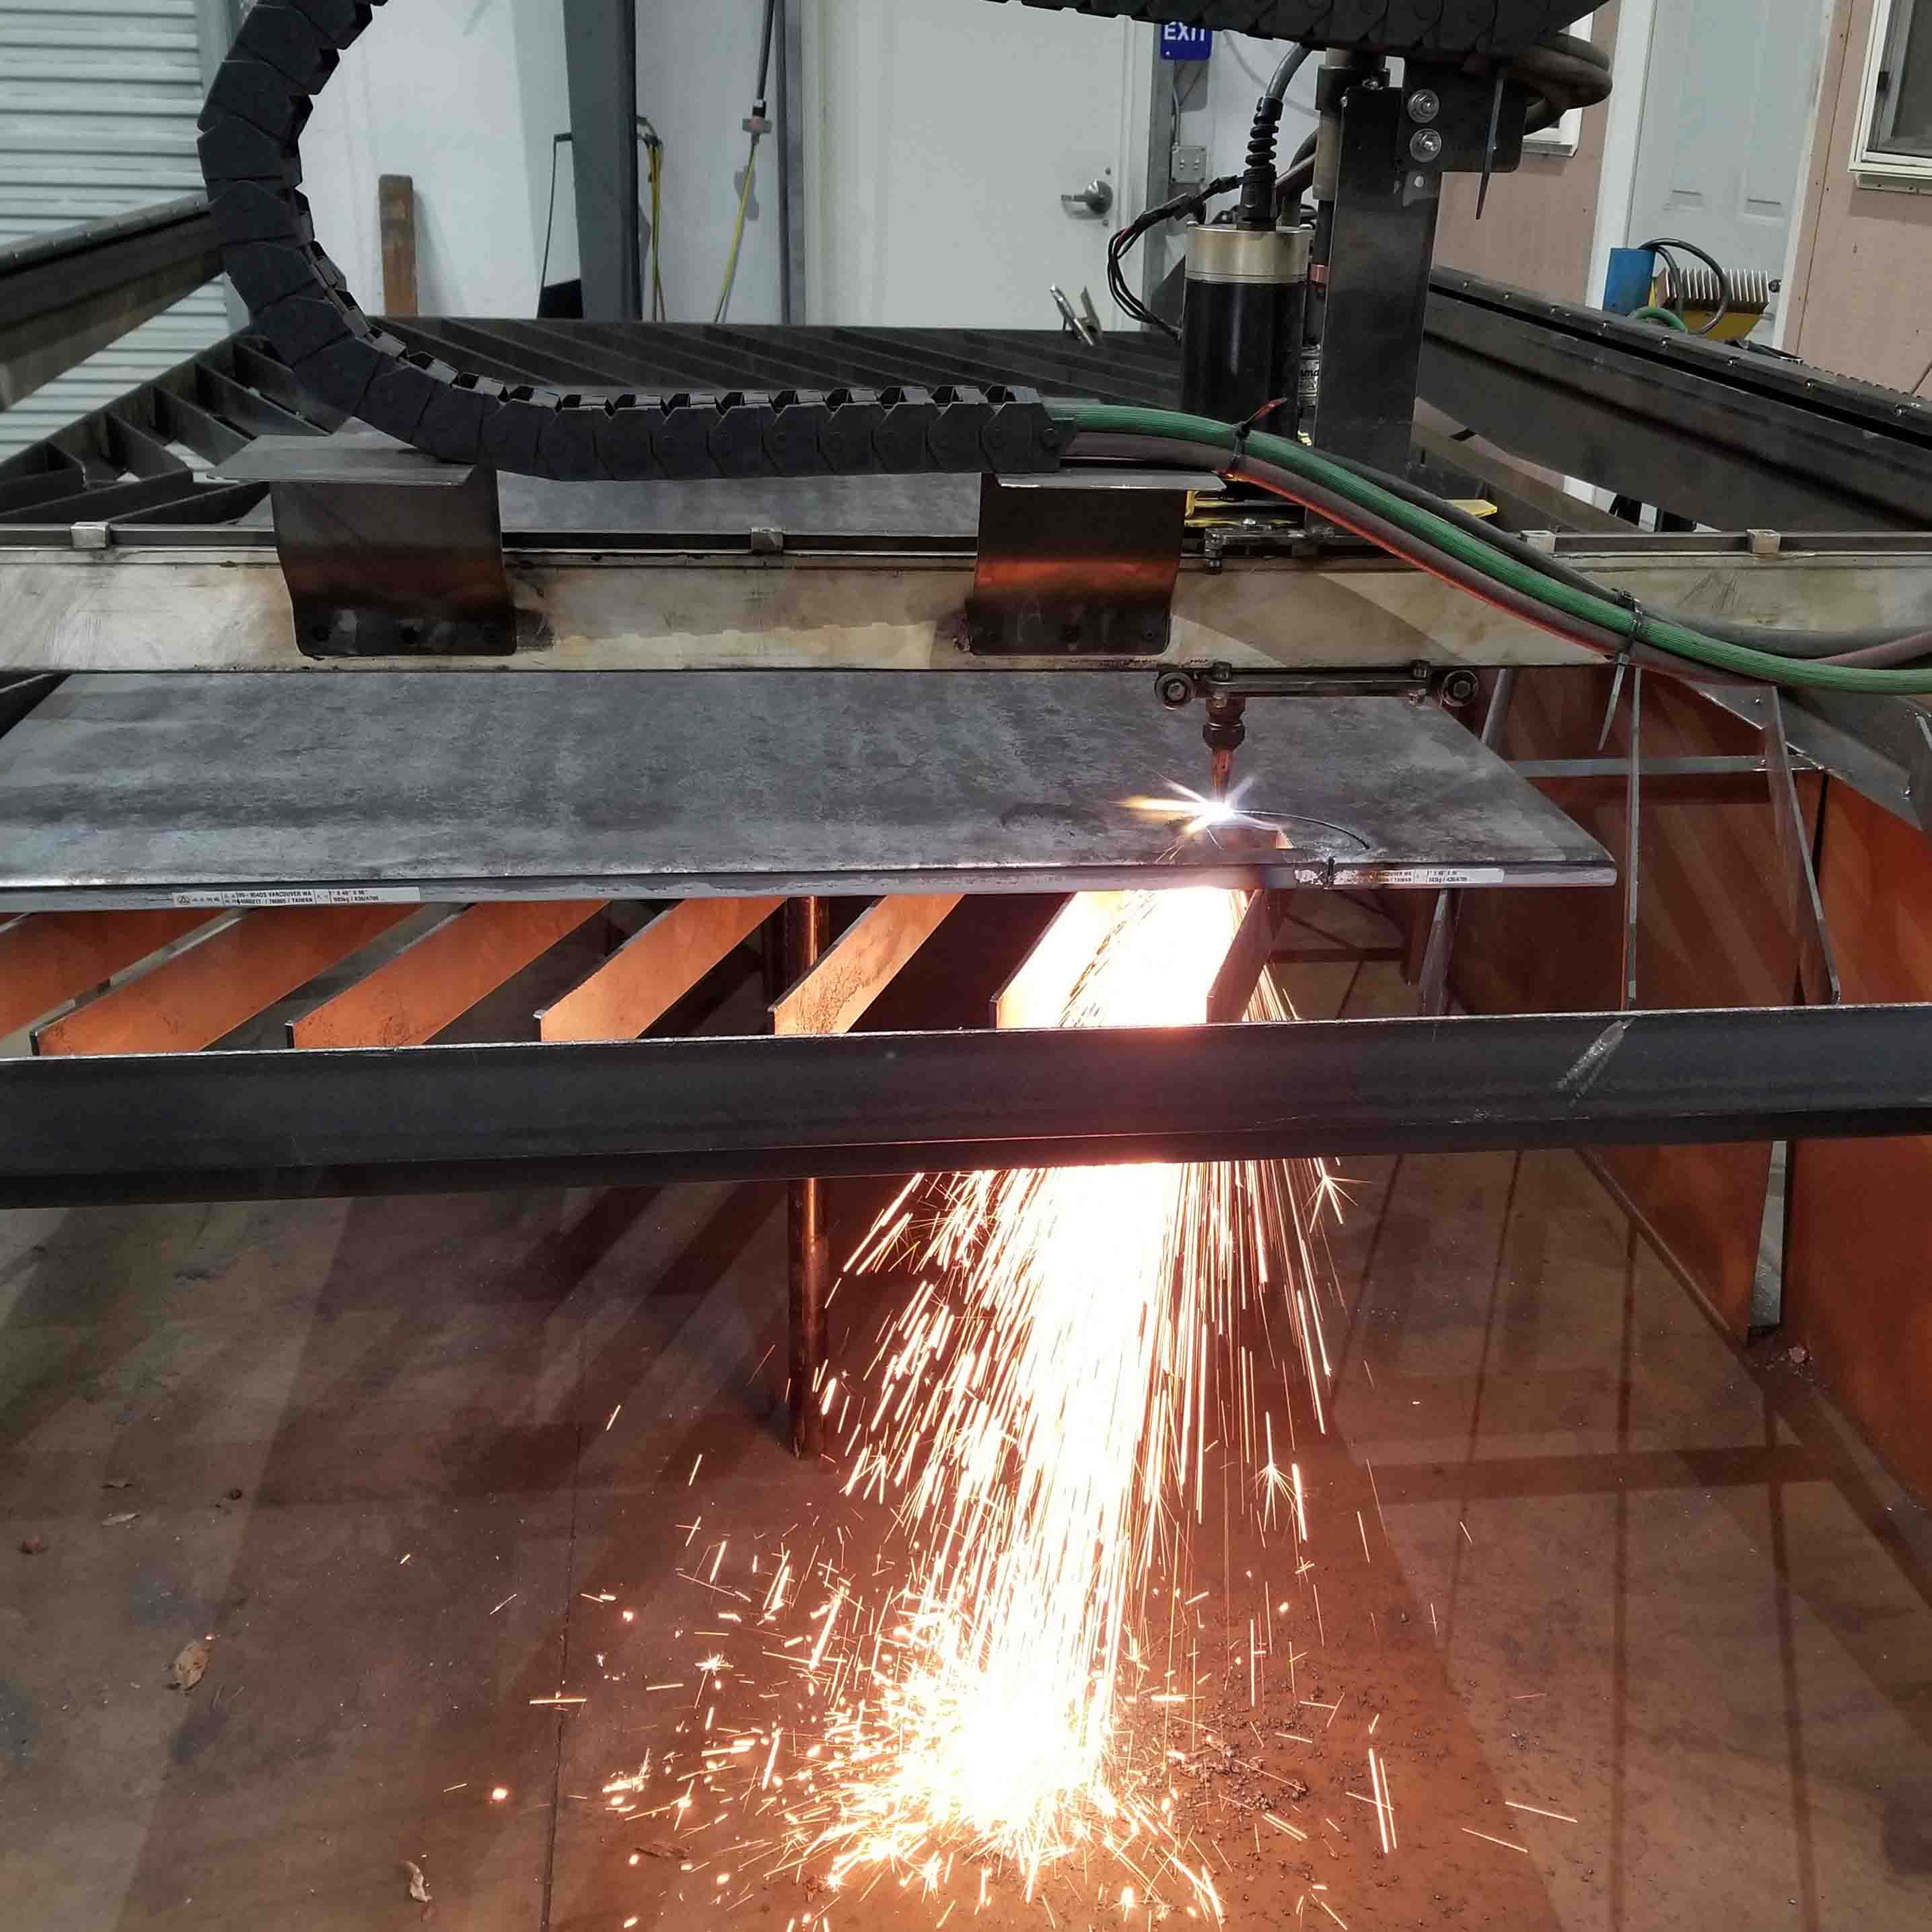 Picture of a CNC plasma table, with torch running.